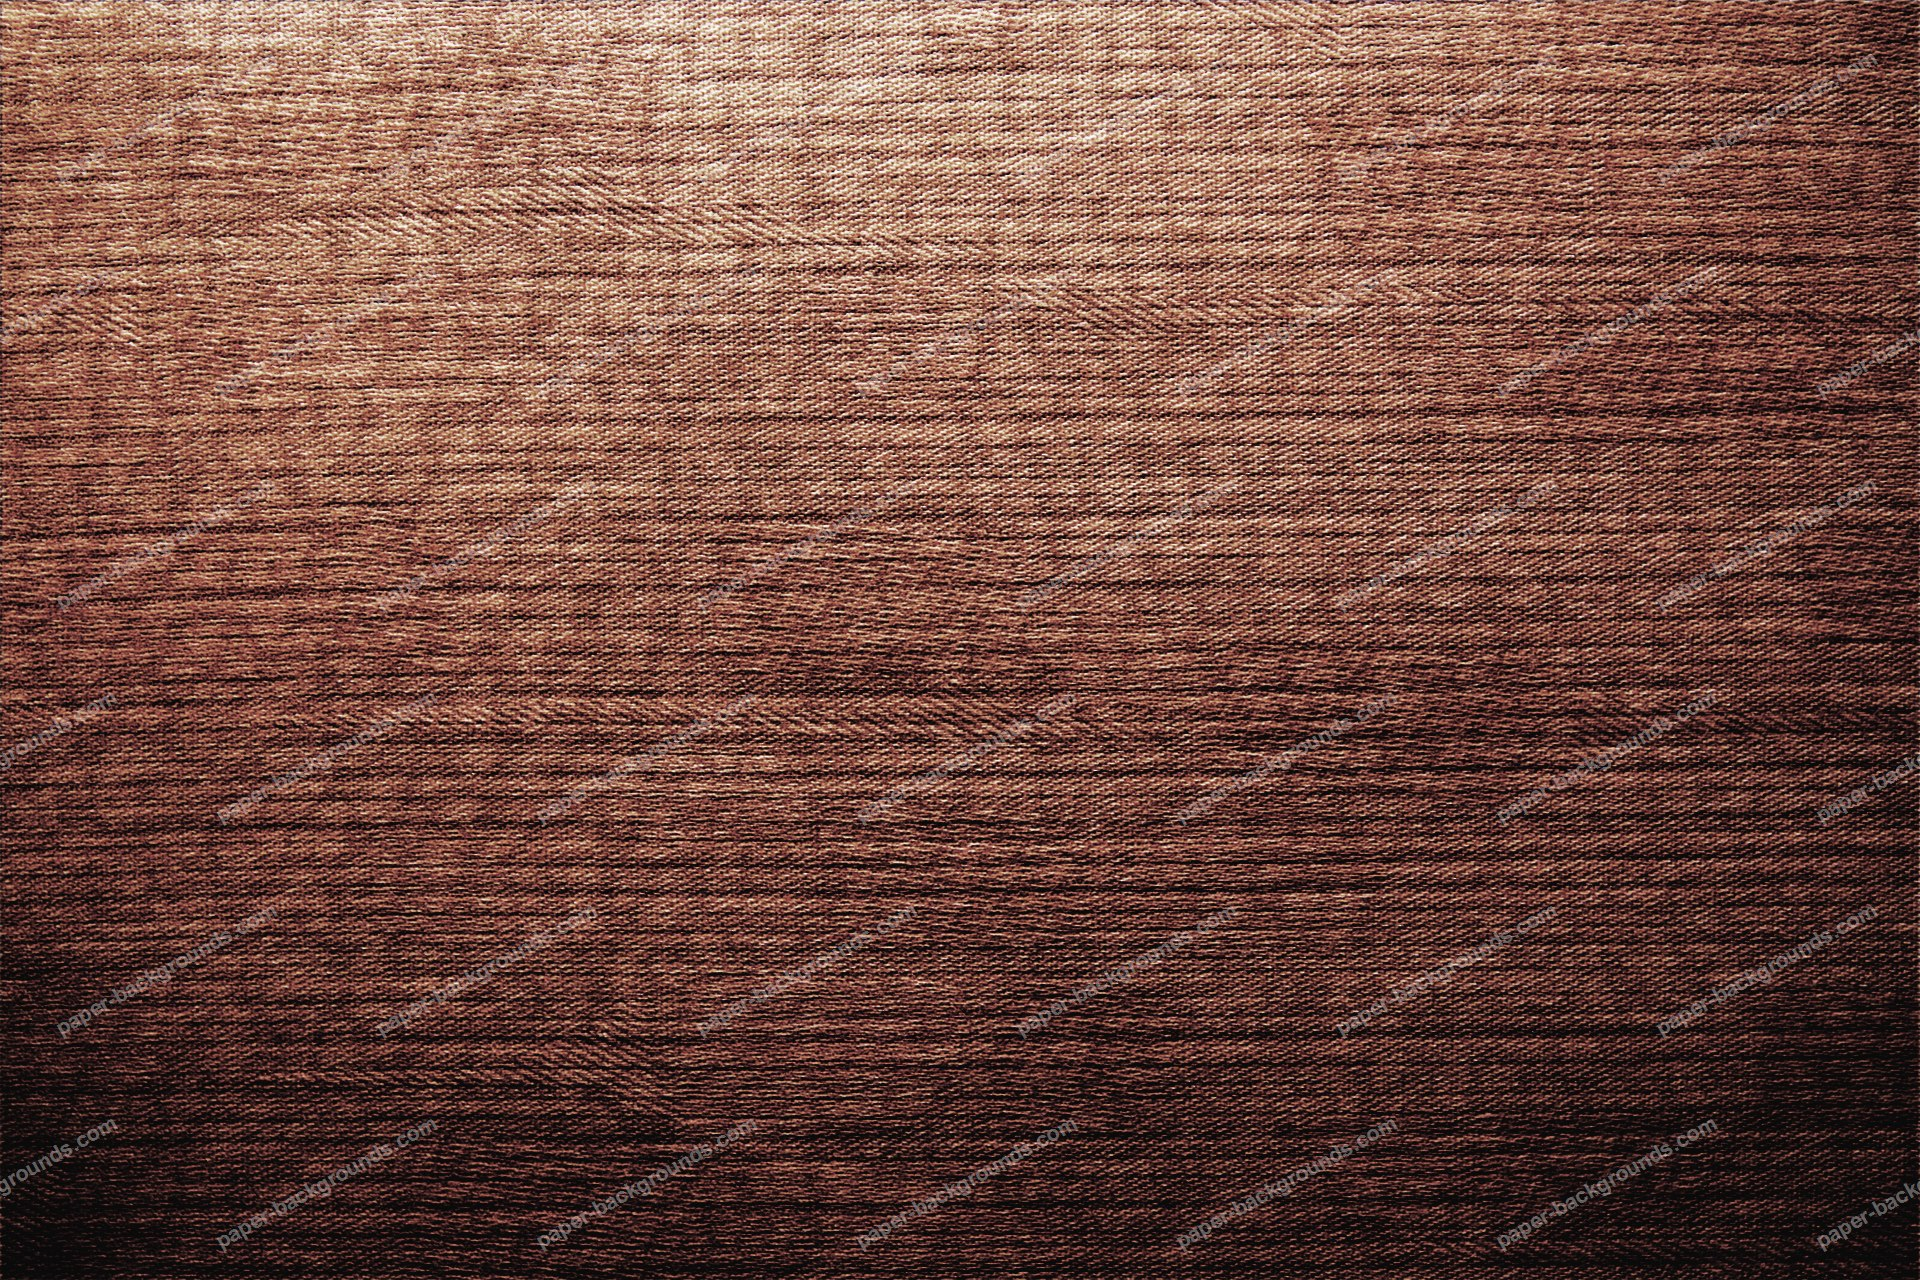 Vintage Brown Fabric Background HD 1920 x 1080p